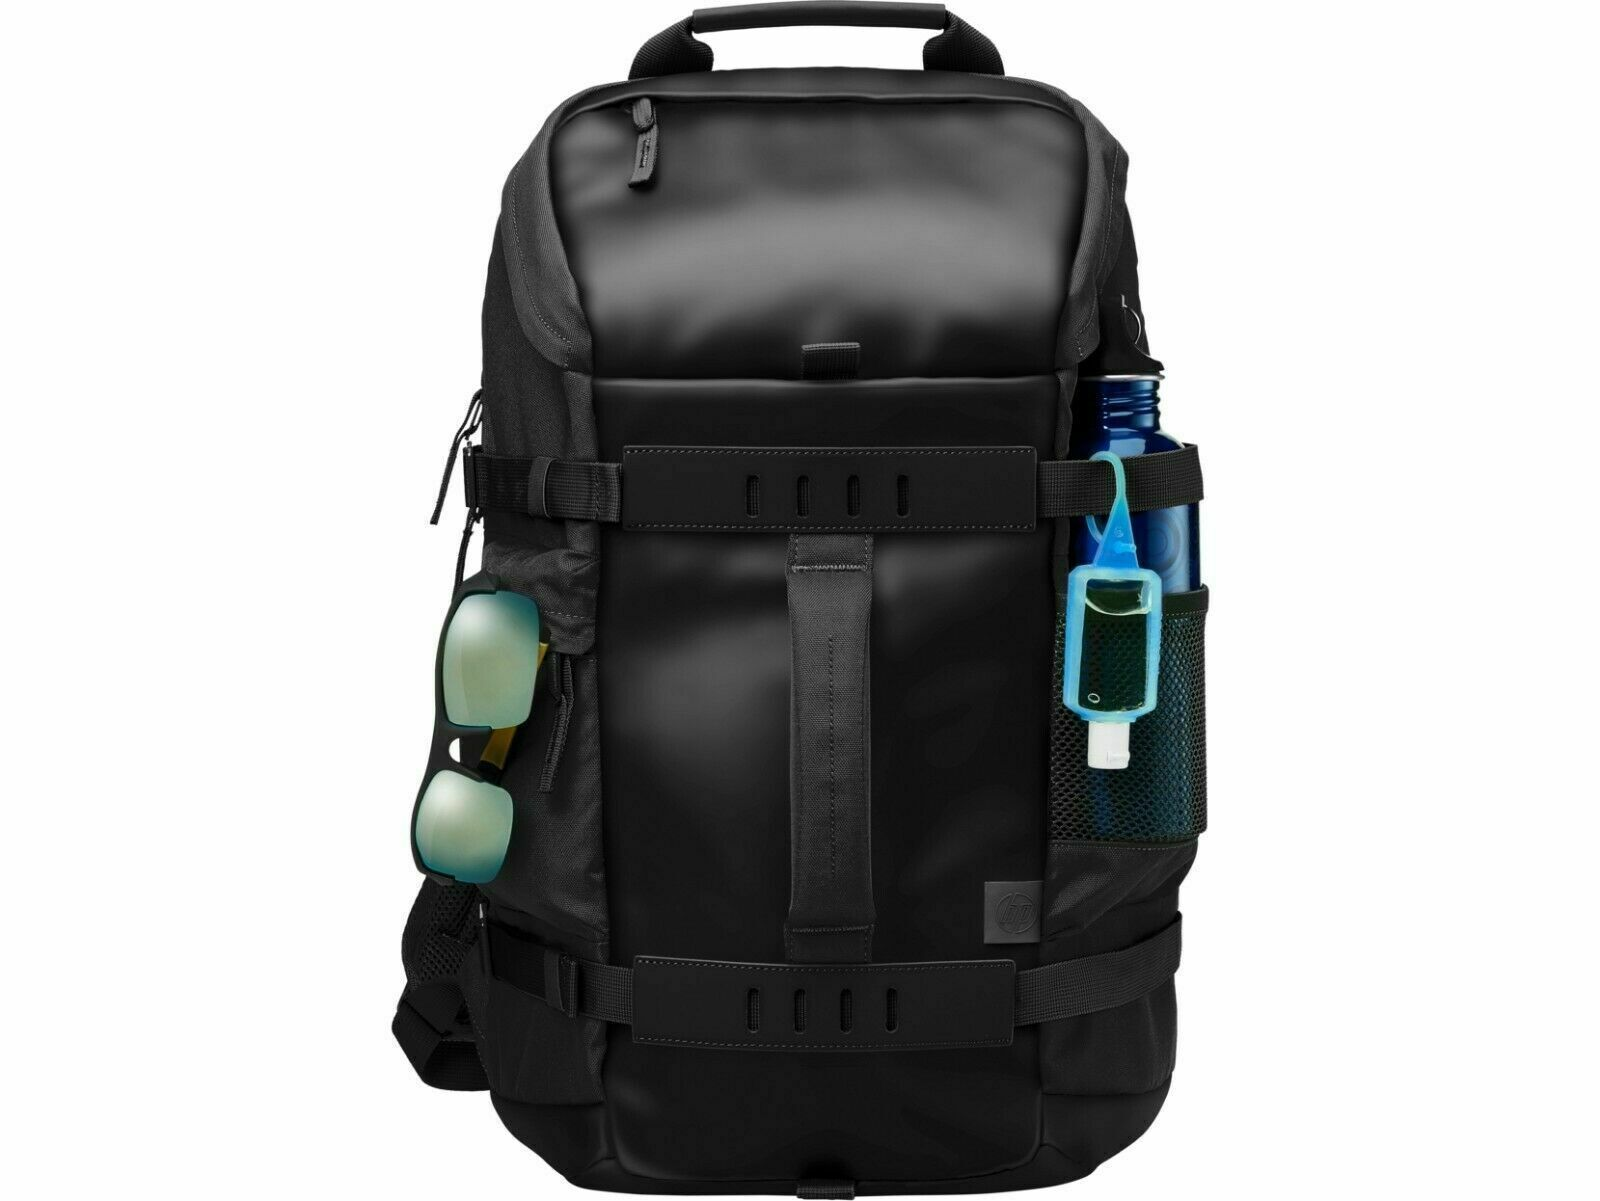 "Primary image for HP Black Odyssey Trendsetting Design Backpack fits Devices up to 15.6"" 39.62 cm"